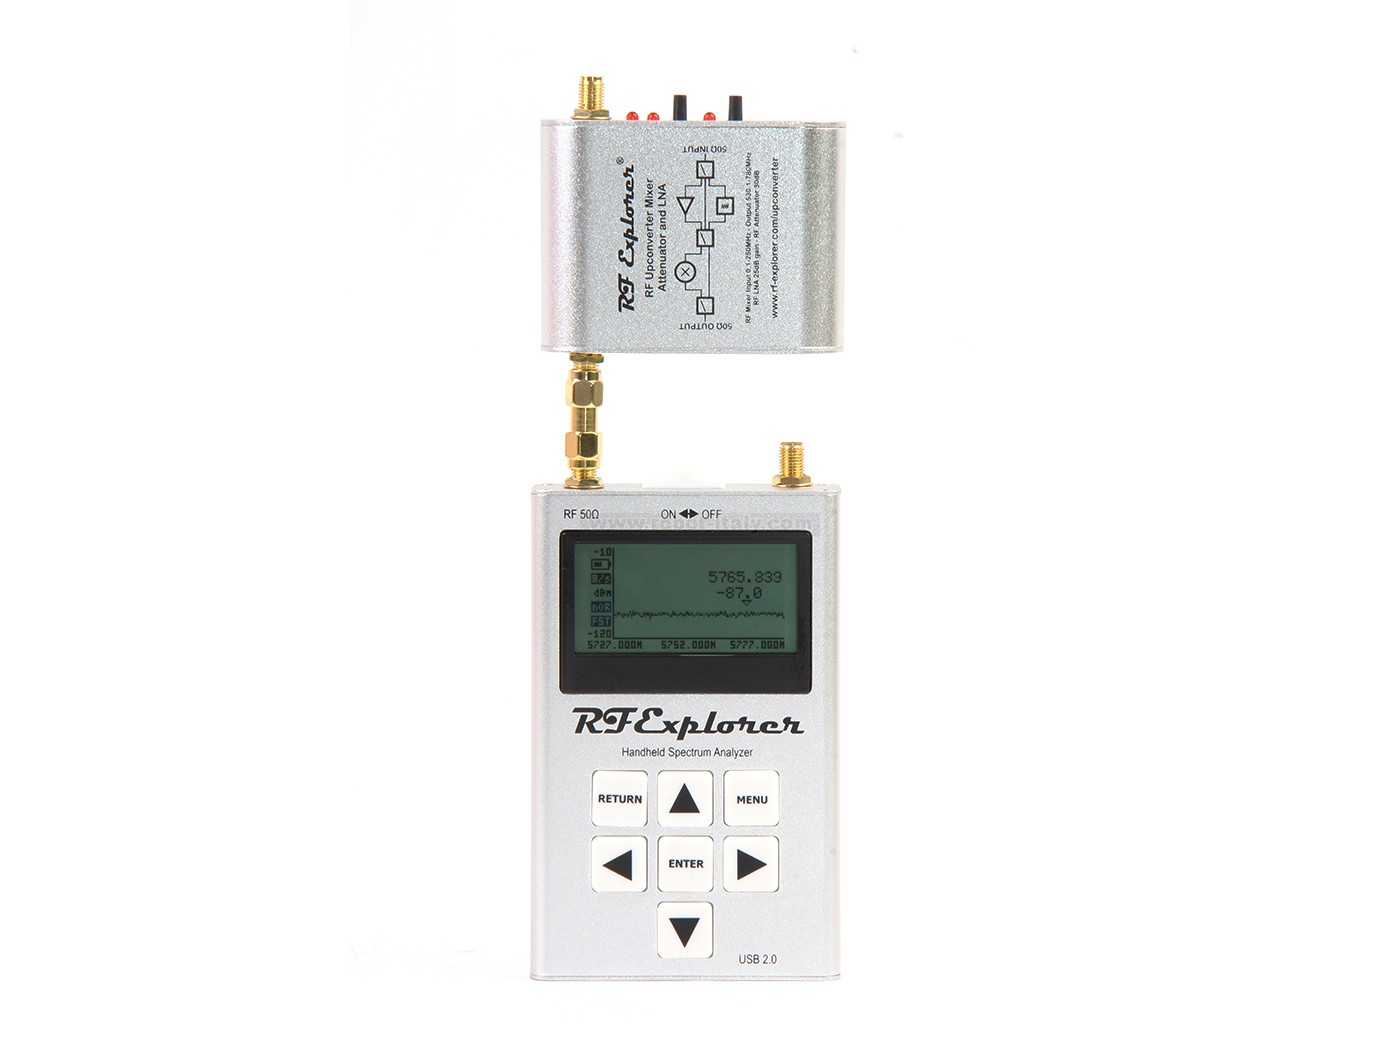 Rf Explorer Upconverter From Seeed Studio For 9970 Multi Measurement Signal Analyzer Is A High Performance Frequency Mixer To Enable Input Ranges 100khz 250mhz In Spectrum And